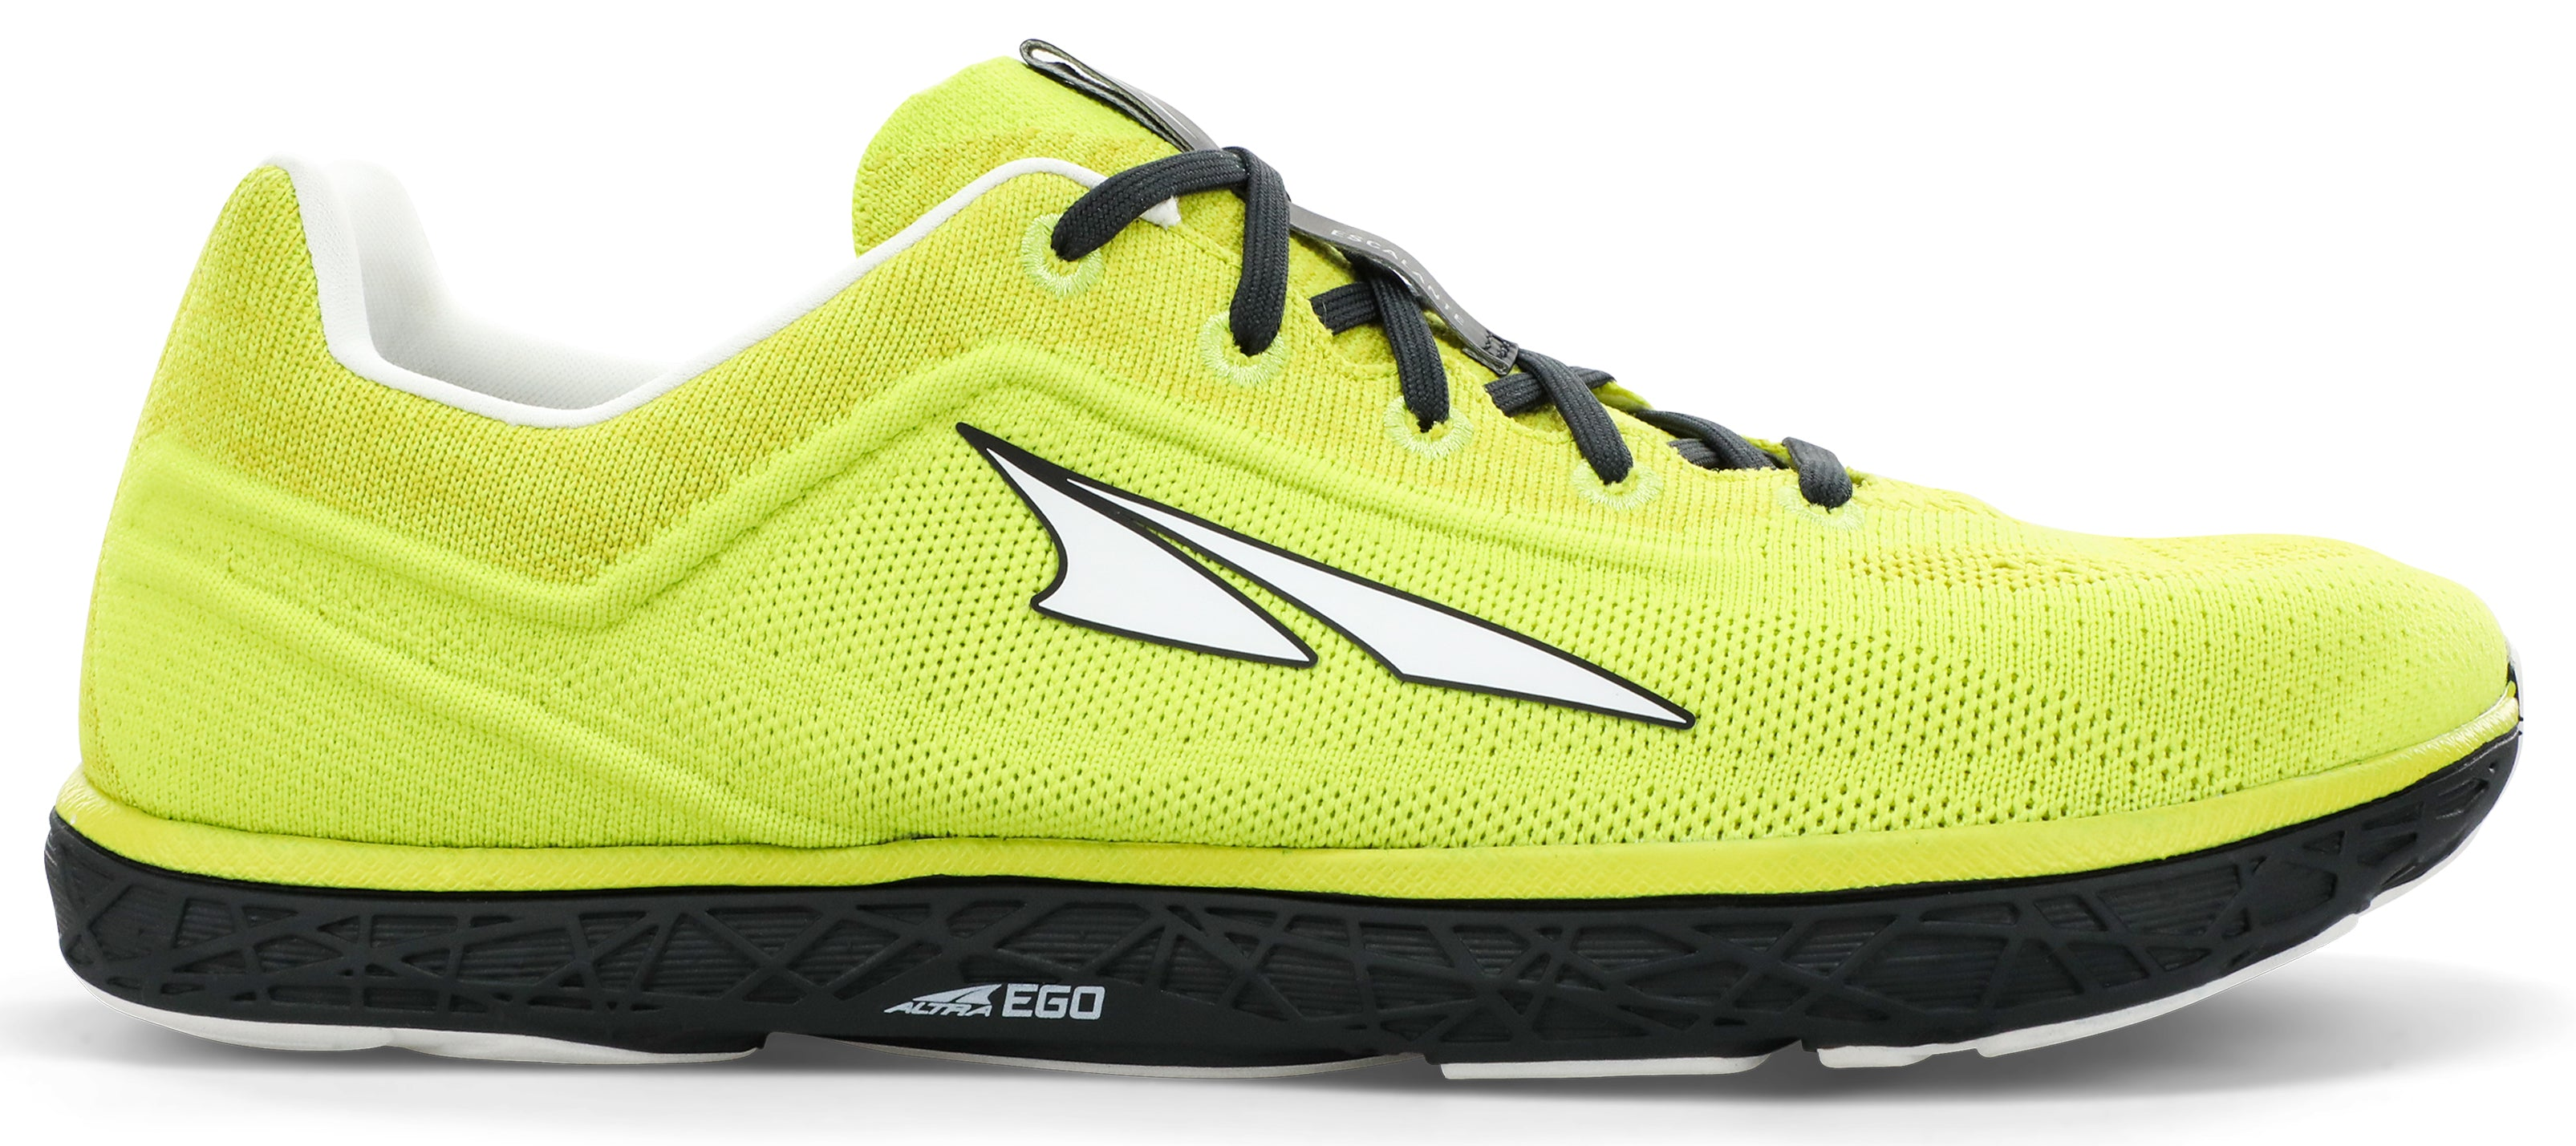 Altra Men's Escalante 2.5 Road Running Shoe in Lime/Black from the side